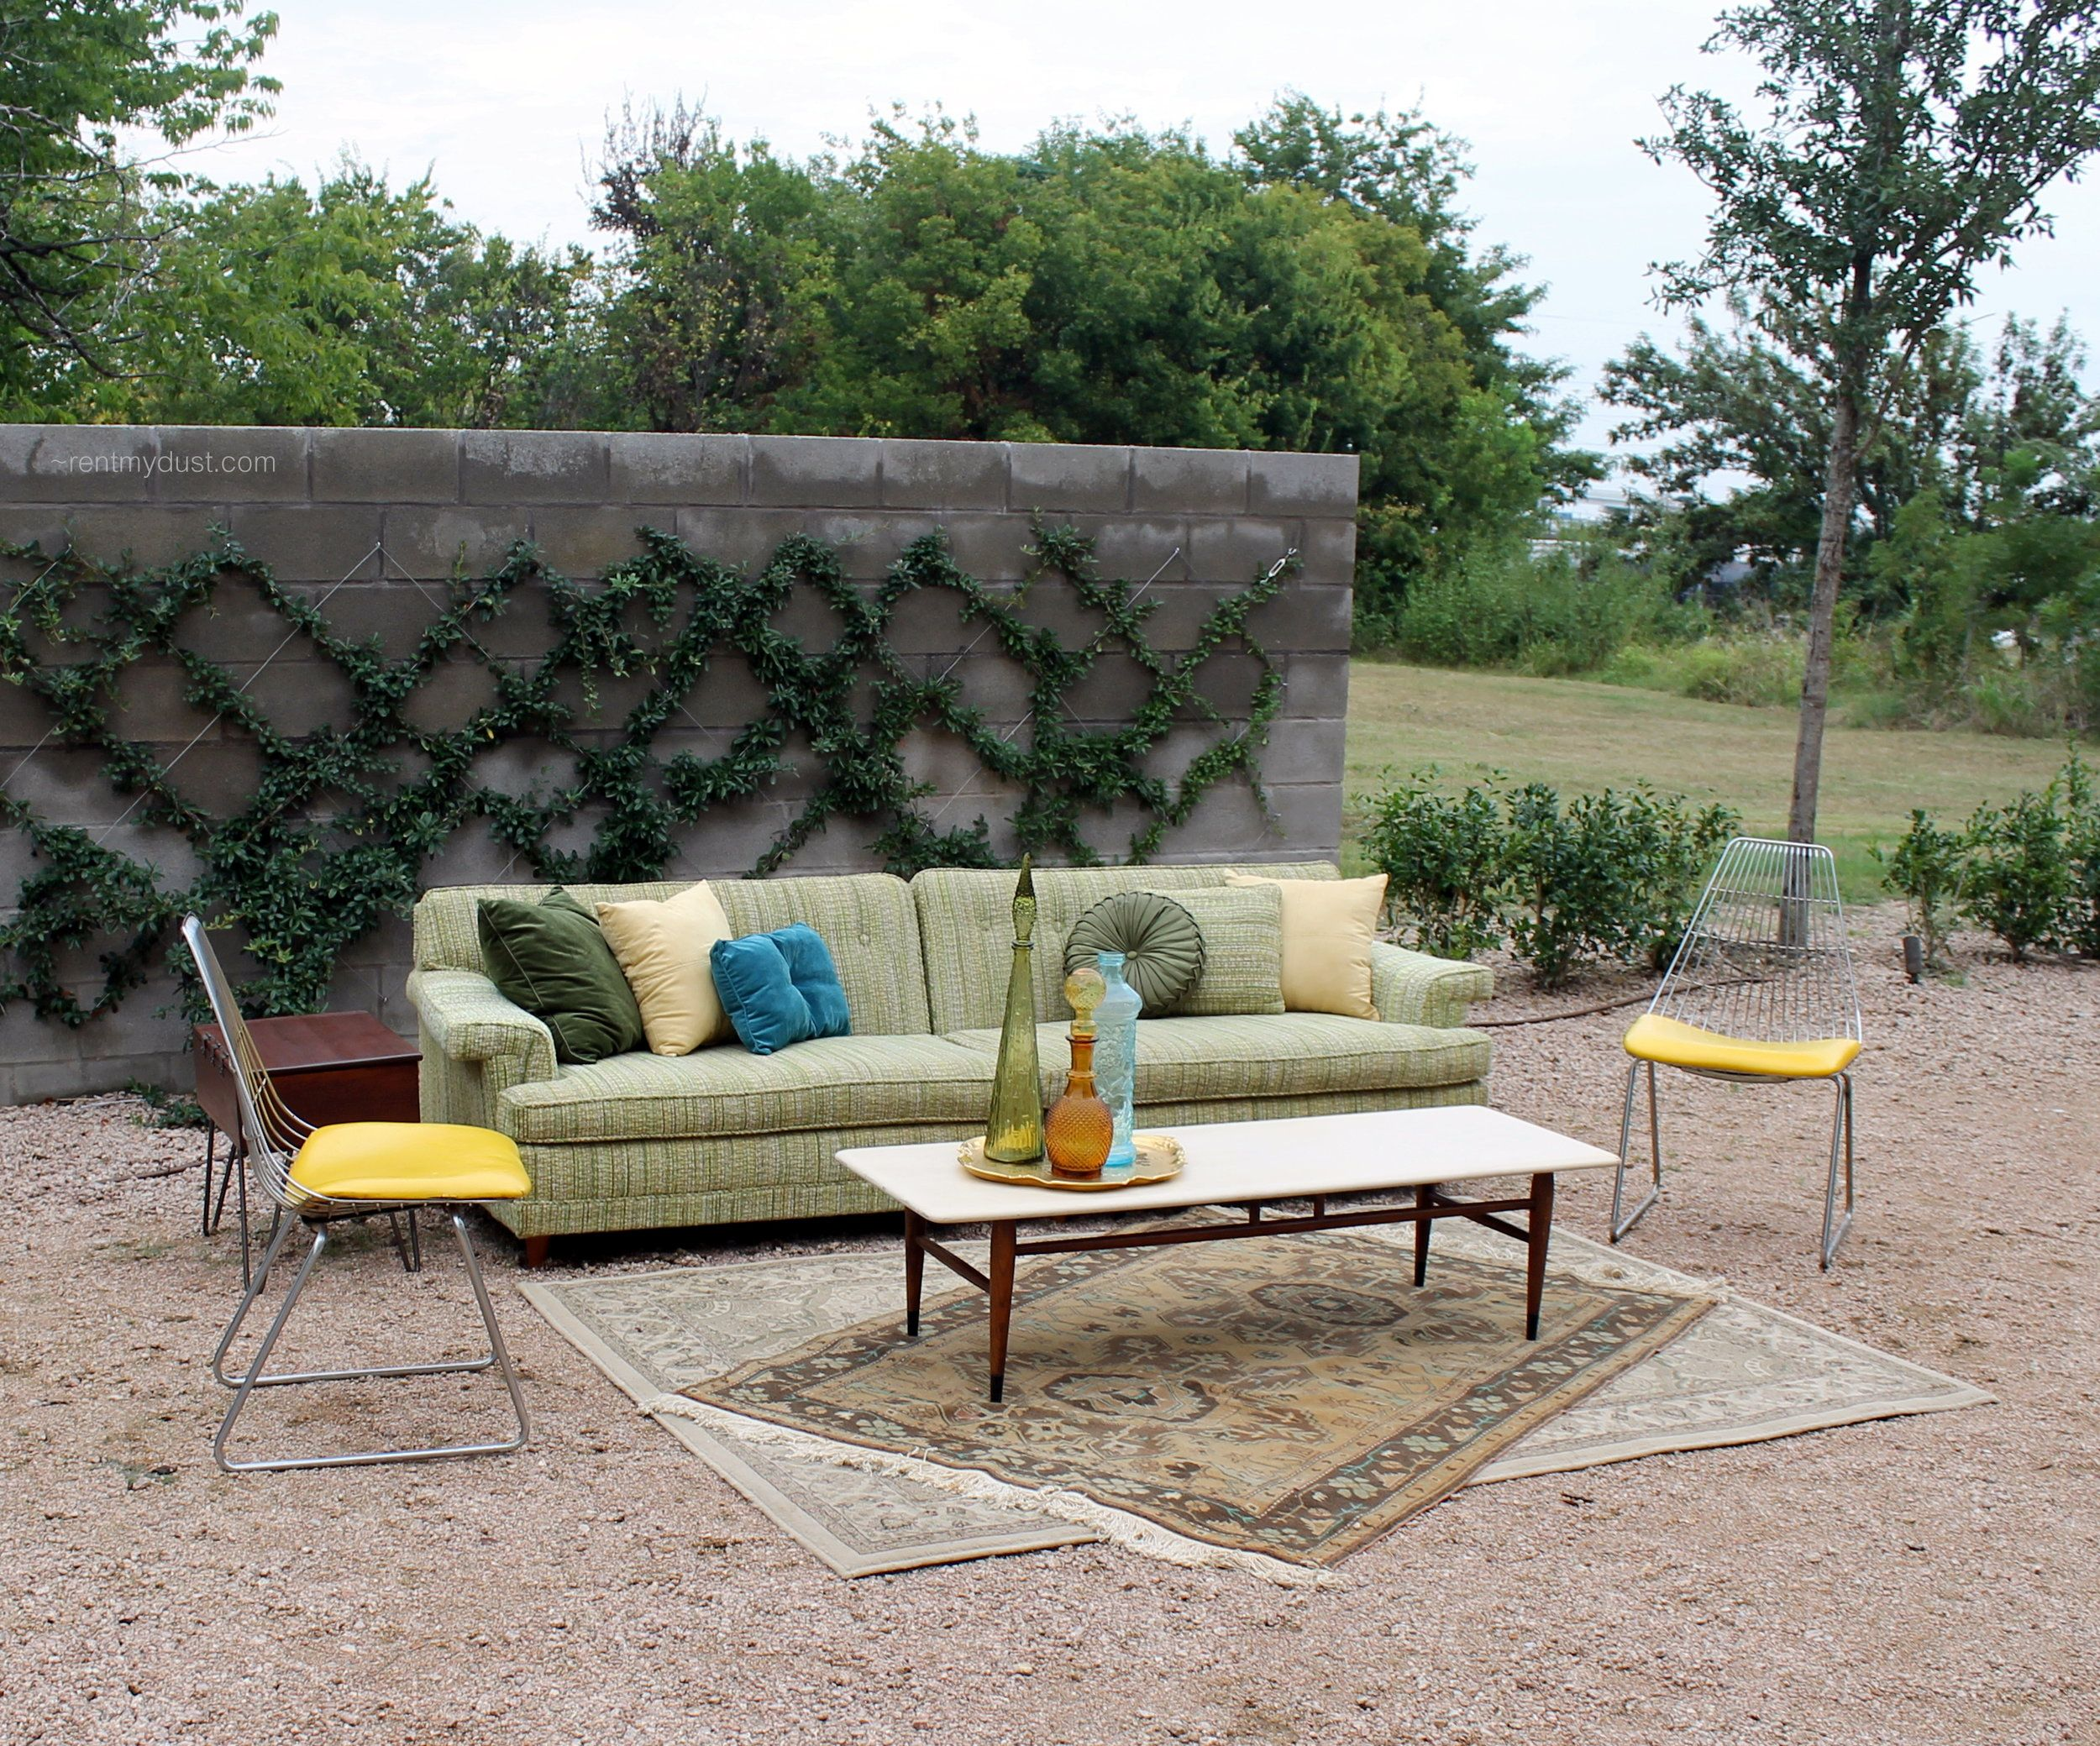 Retro Mid Century Modern Lounge Area From Rent My Dust Dallas Fort